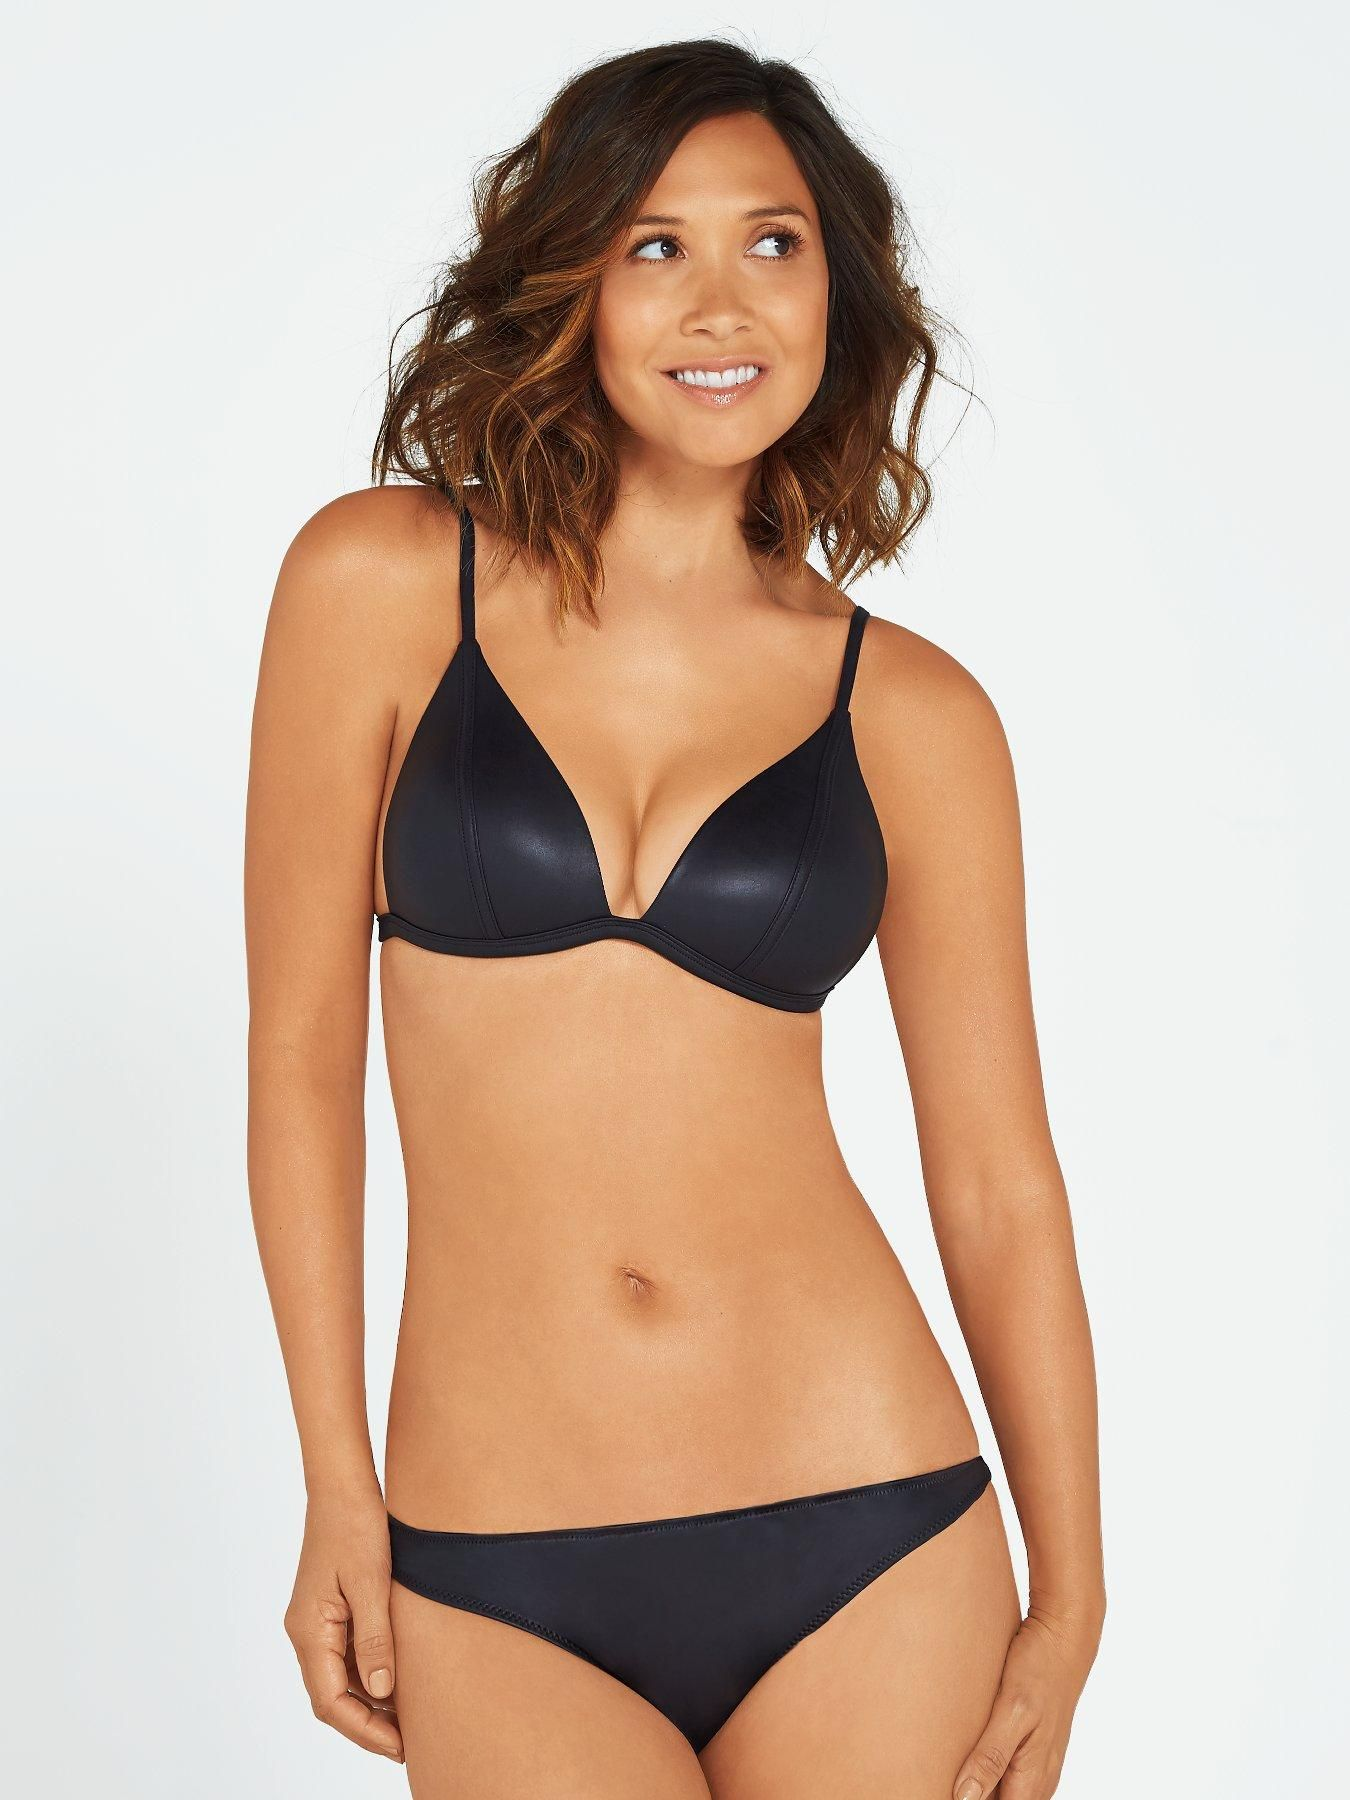 Myleene Klass Neoprene Wet Look Bikini Set Black